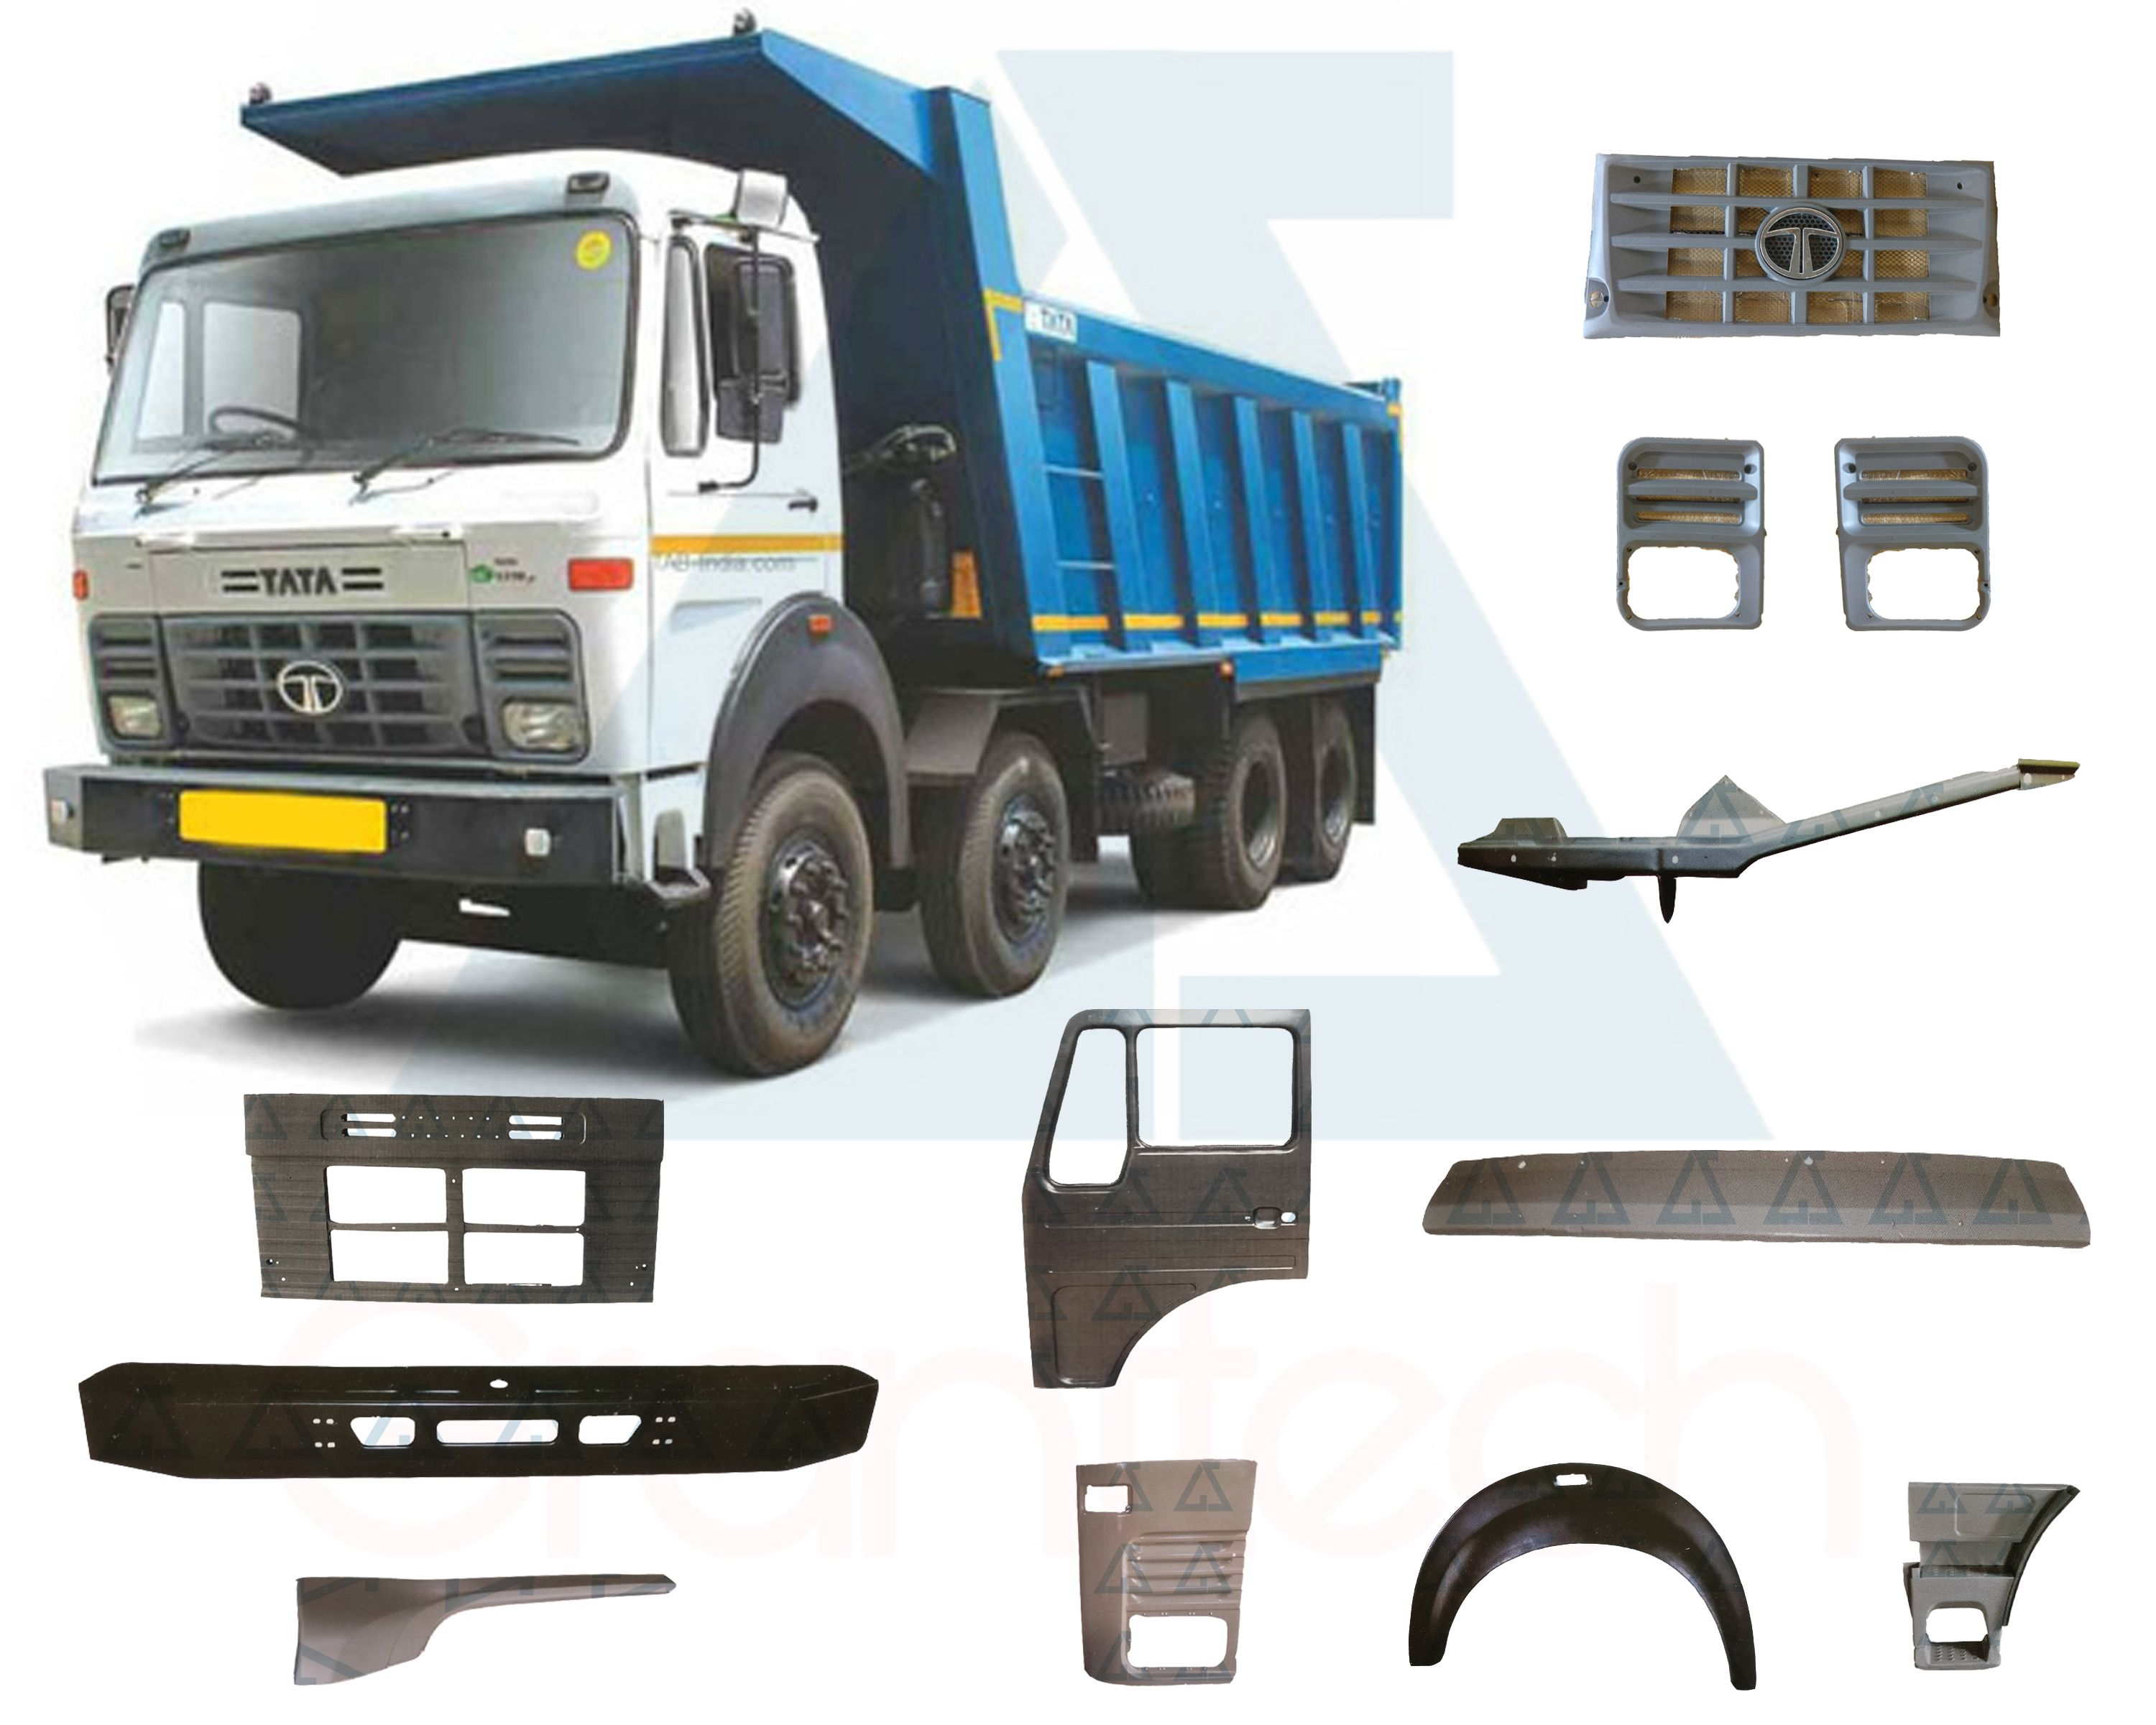 Tata LPK 2518 Tipper Body Parts, Tata LPK 1618 Body Parts, Tata LPK 3118 TC  Body Parts, Tata Hyva Body Parts, Tata Hywa Body Parts, Tata Non-Sleeper  Cabin ...